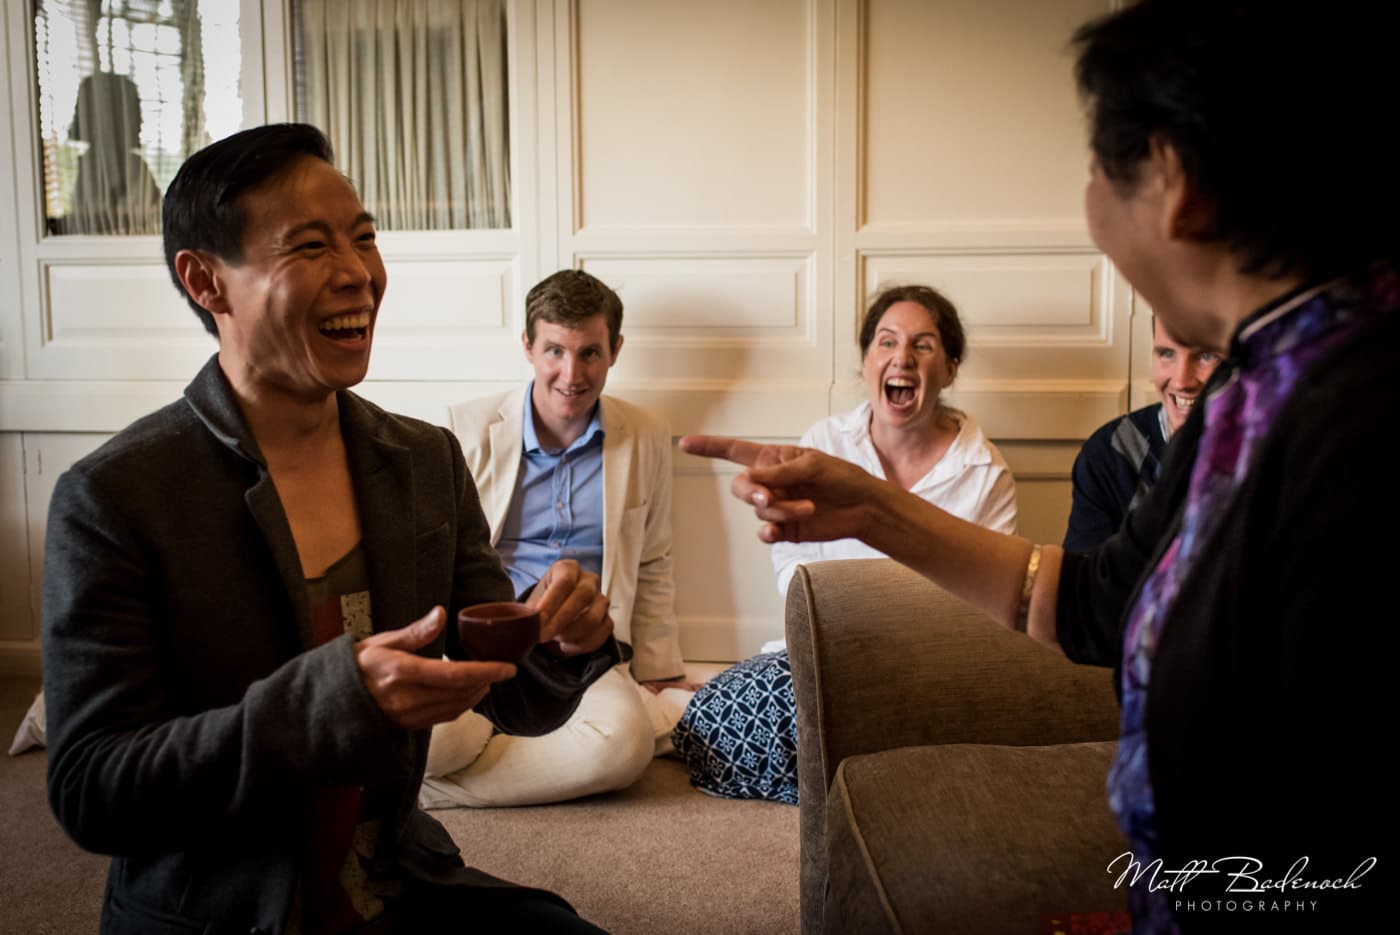 Laughing at Chinese Tea Ceremony at Leeds Castle